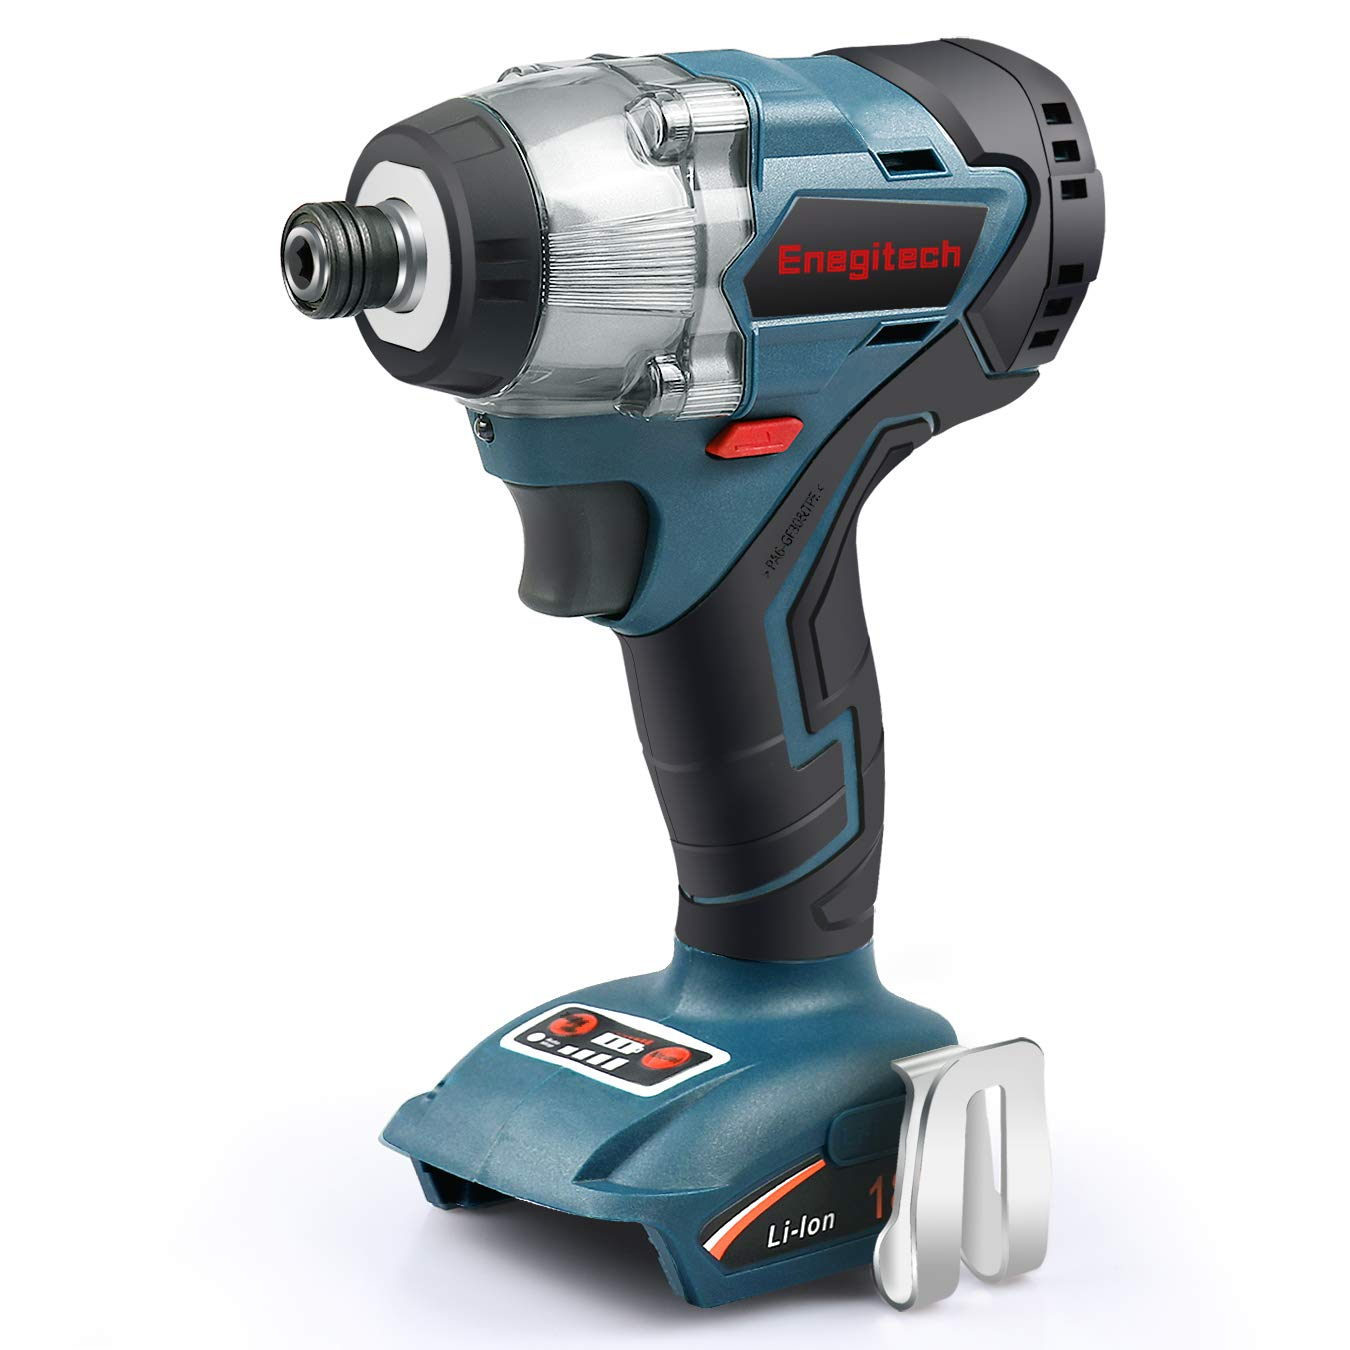 Enegitech 18V Cordless Impact Driver ¼'' Brushless Motor 4-Speed 2700 RPM Electric Power Tool for Furniture, Work with Makita 18V LXT Battery(Tool Only)